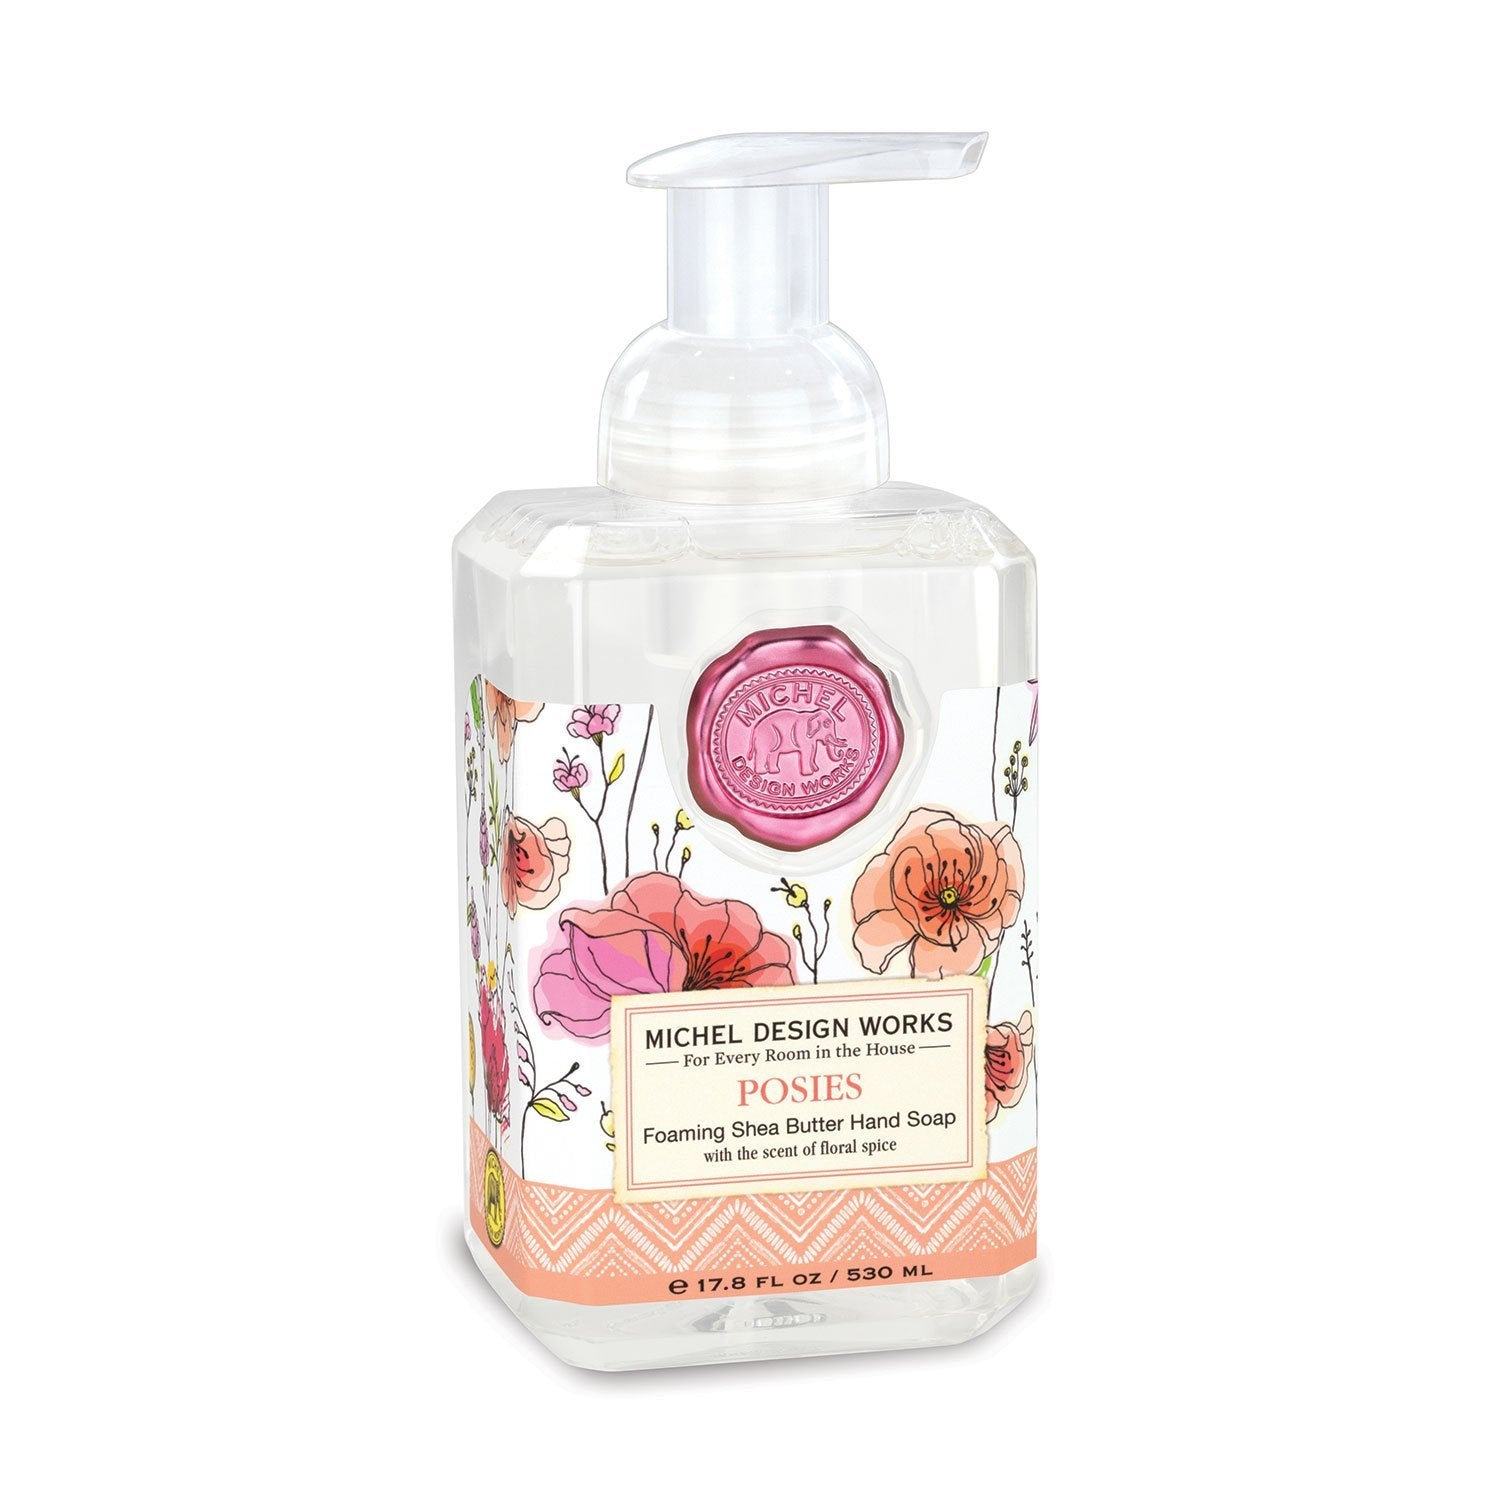 Foaming Hand Soap - Posies